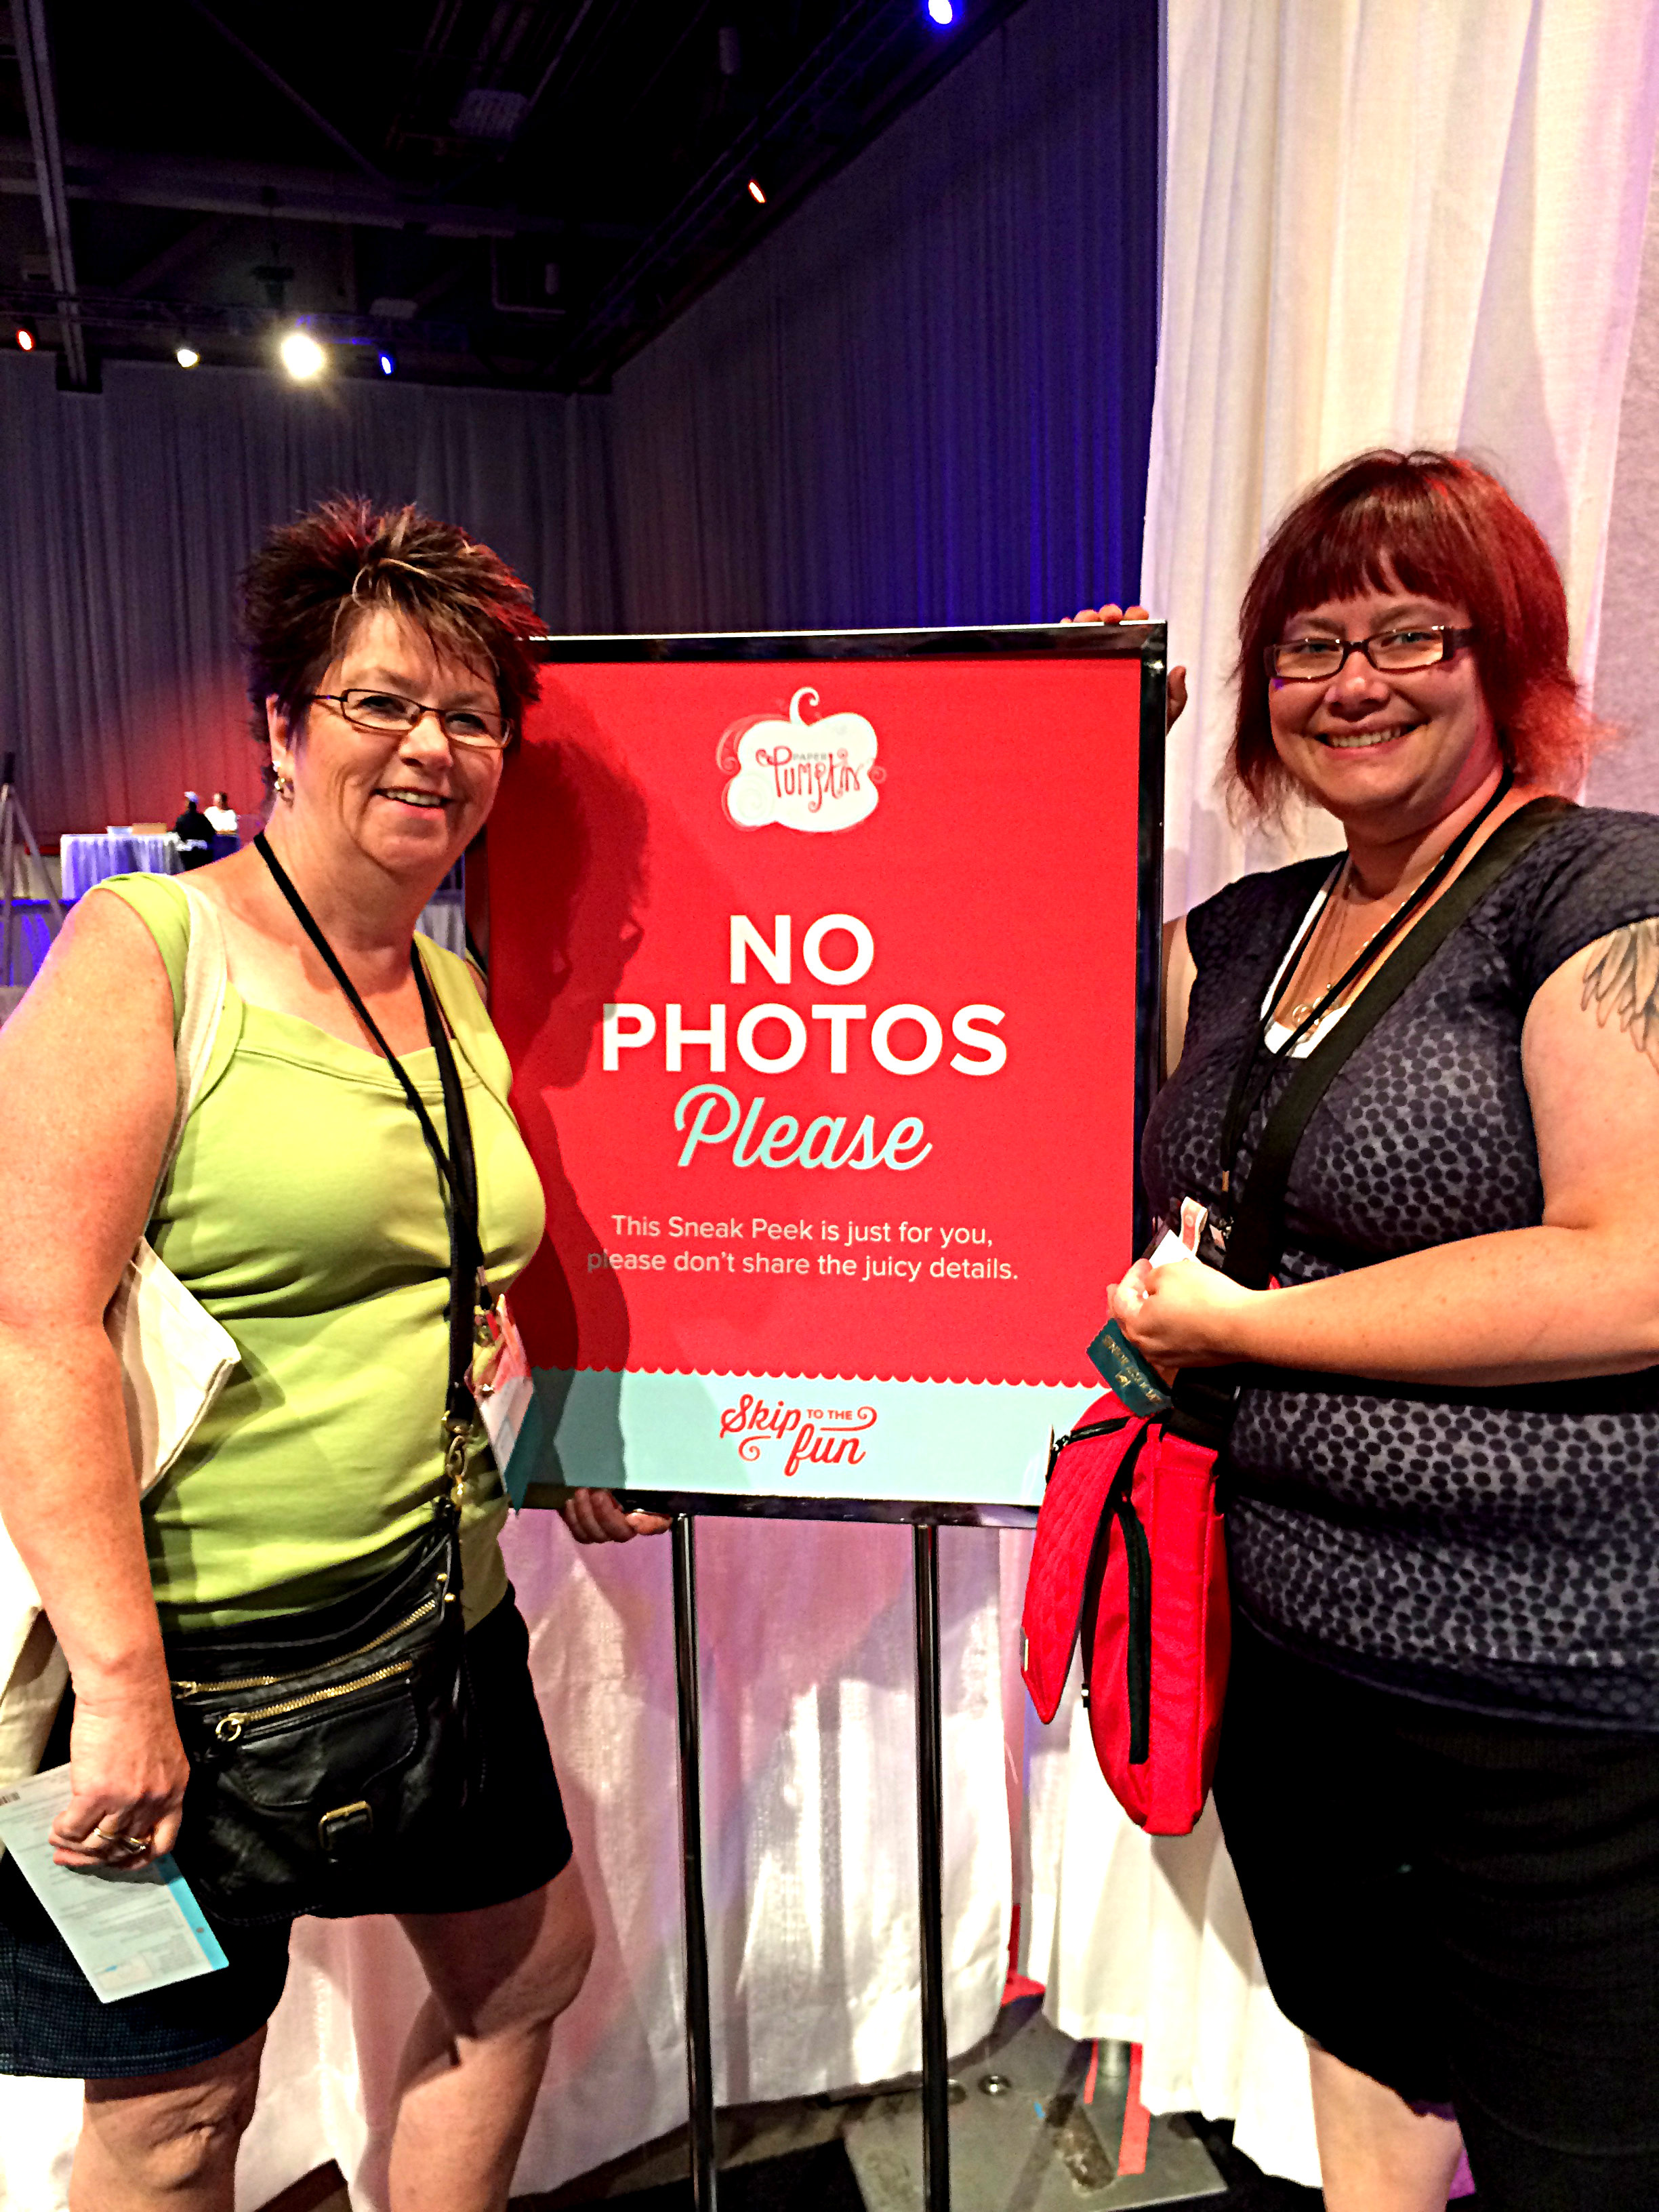 We thought it was very funny to take a picture at the sign that says don't take a picture, lol!